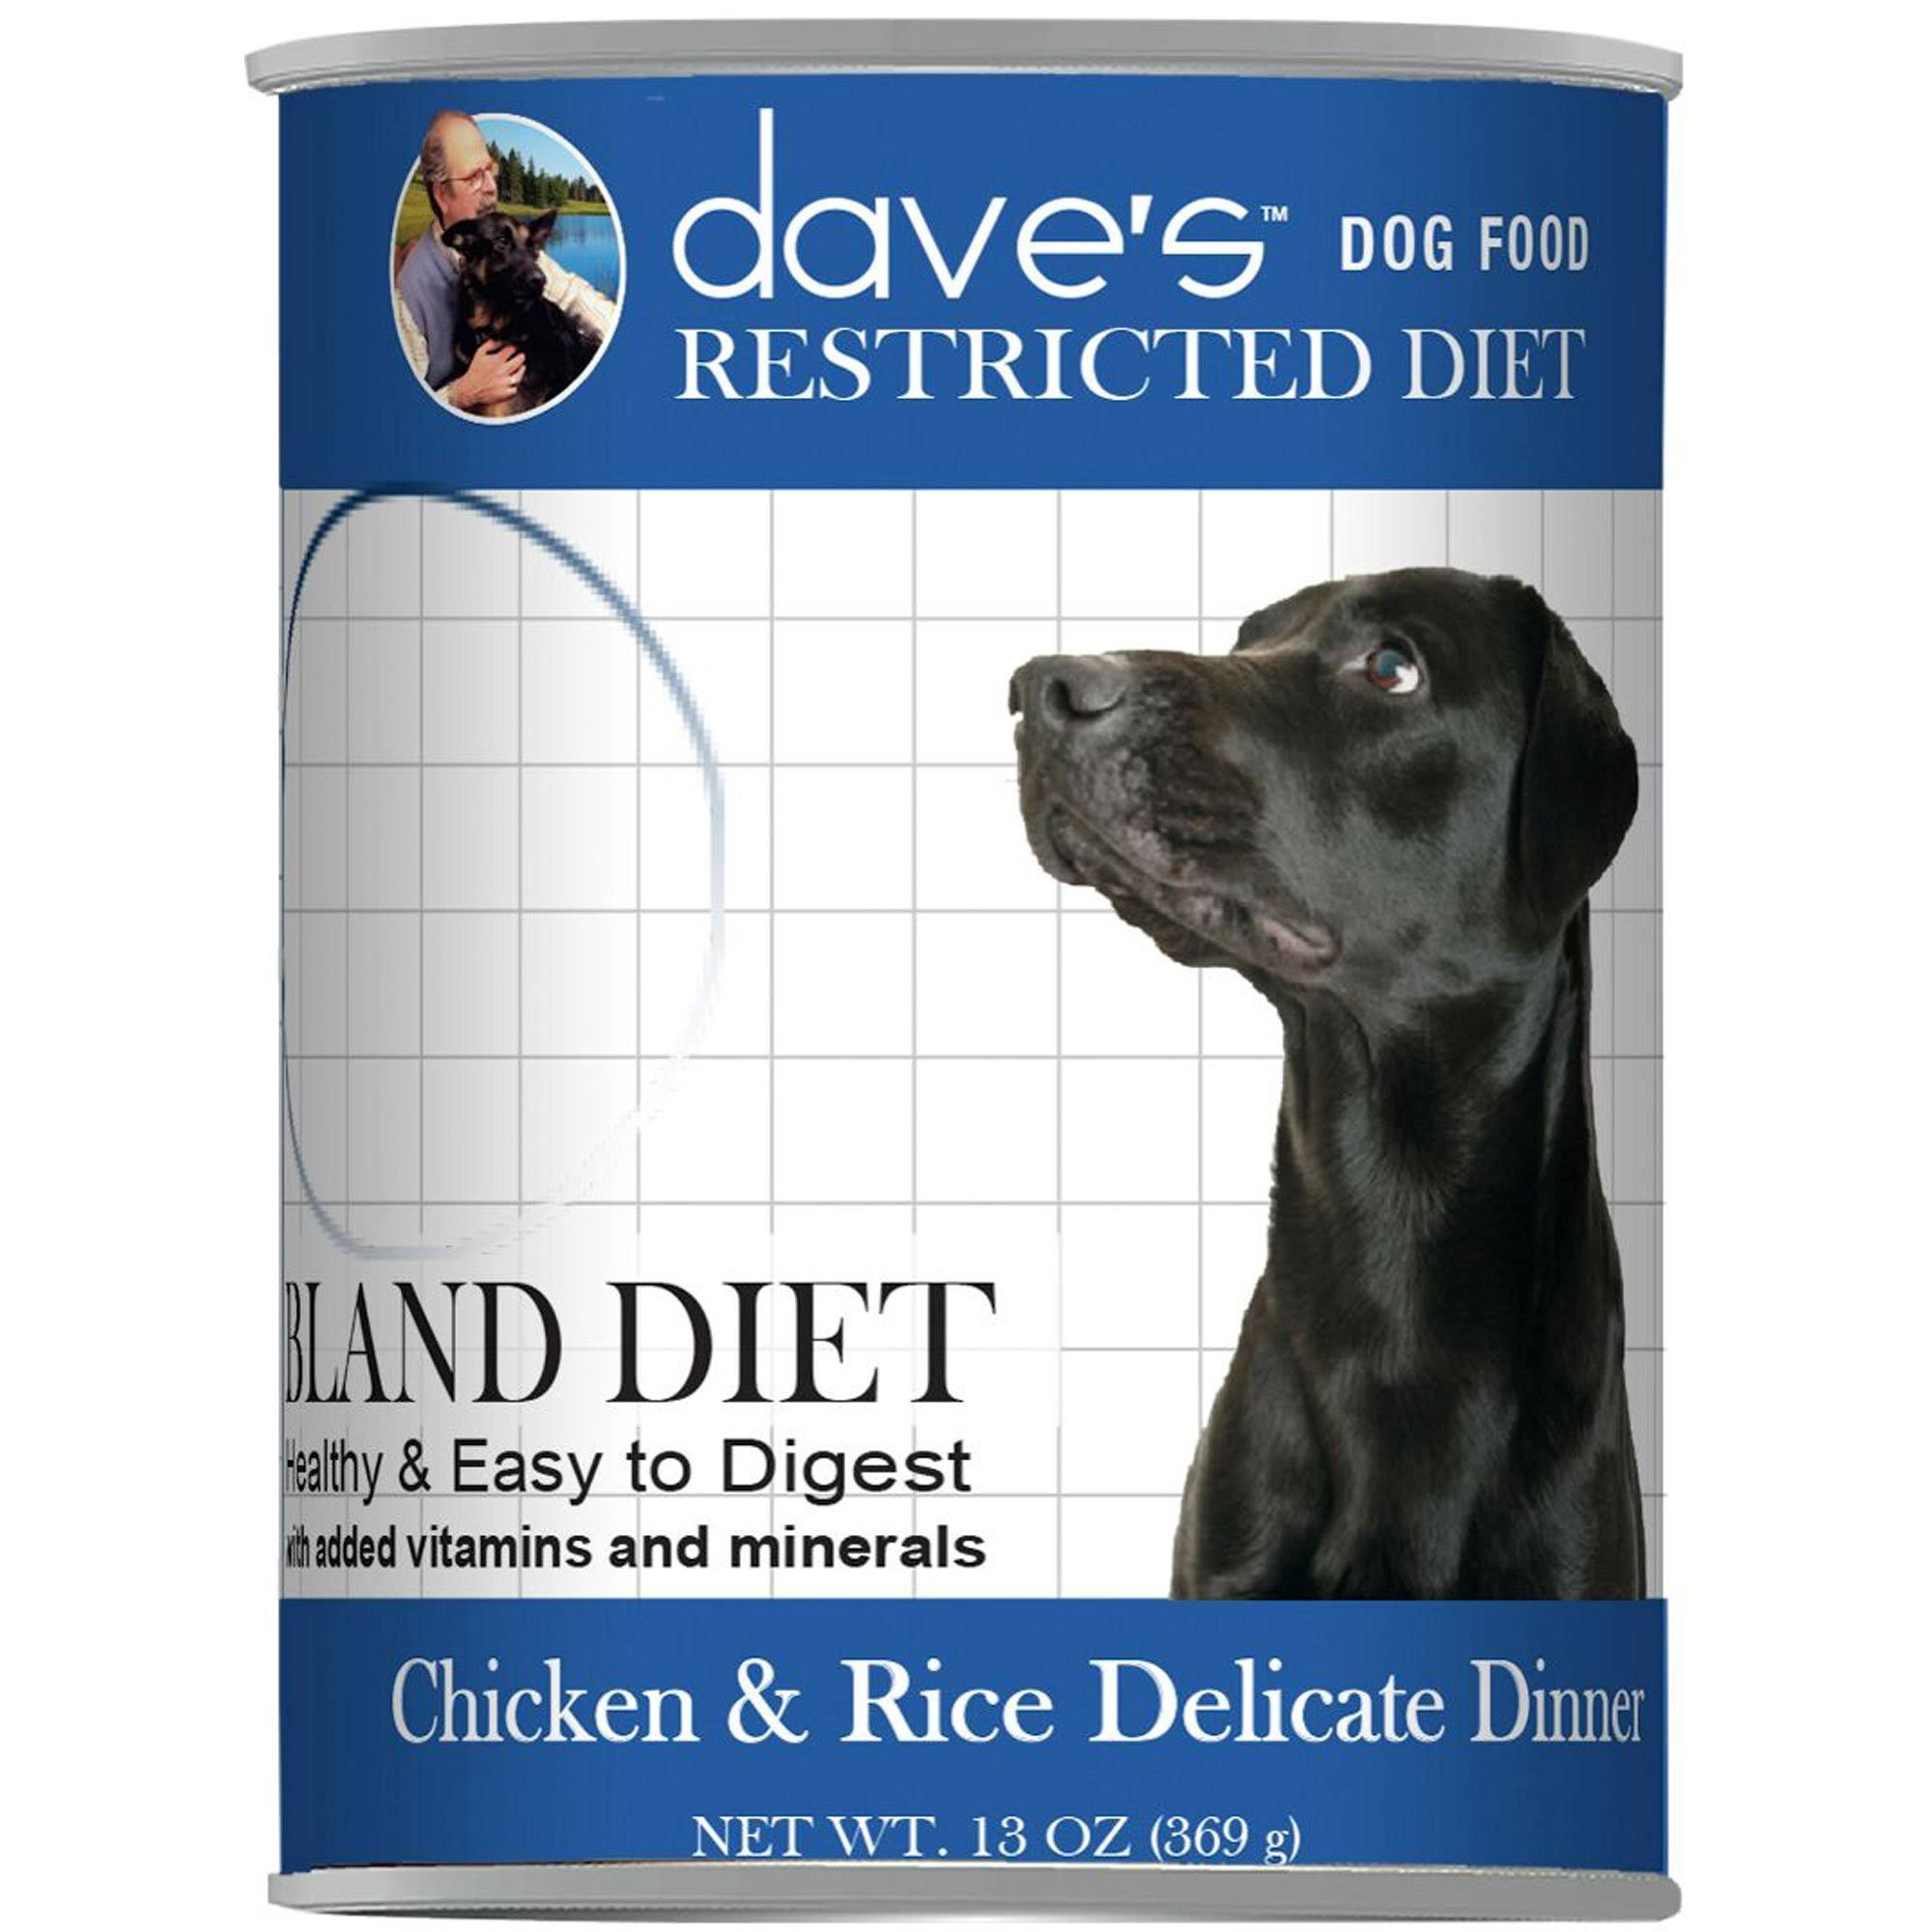 Dave's Restricted Diet Bland Chicken and Rice Canned Dog Food 13 oz